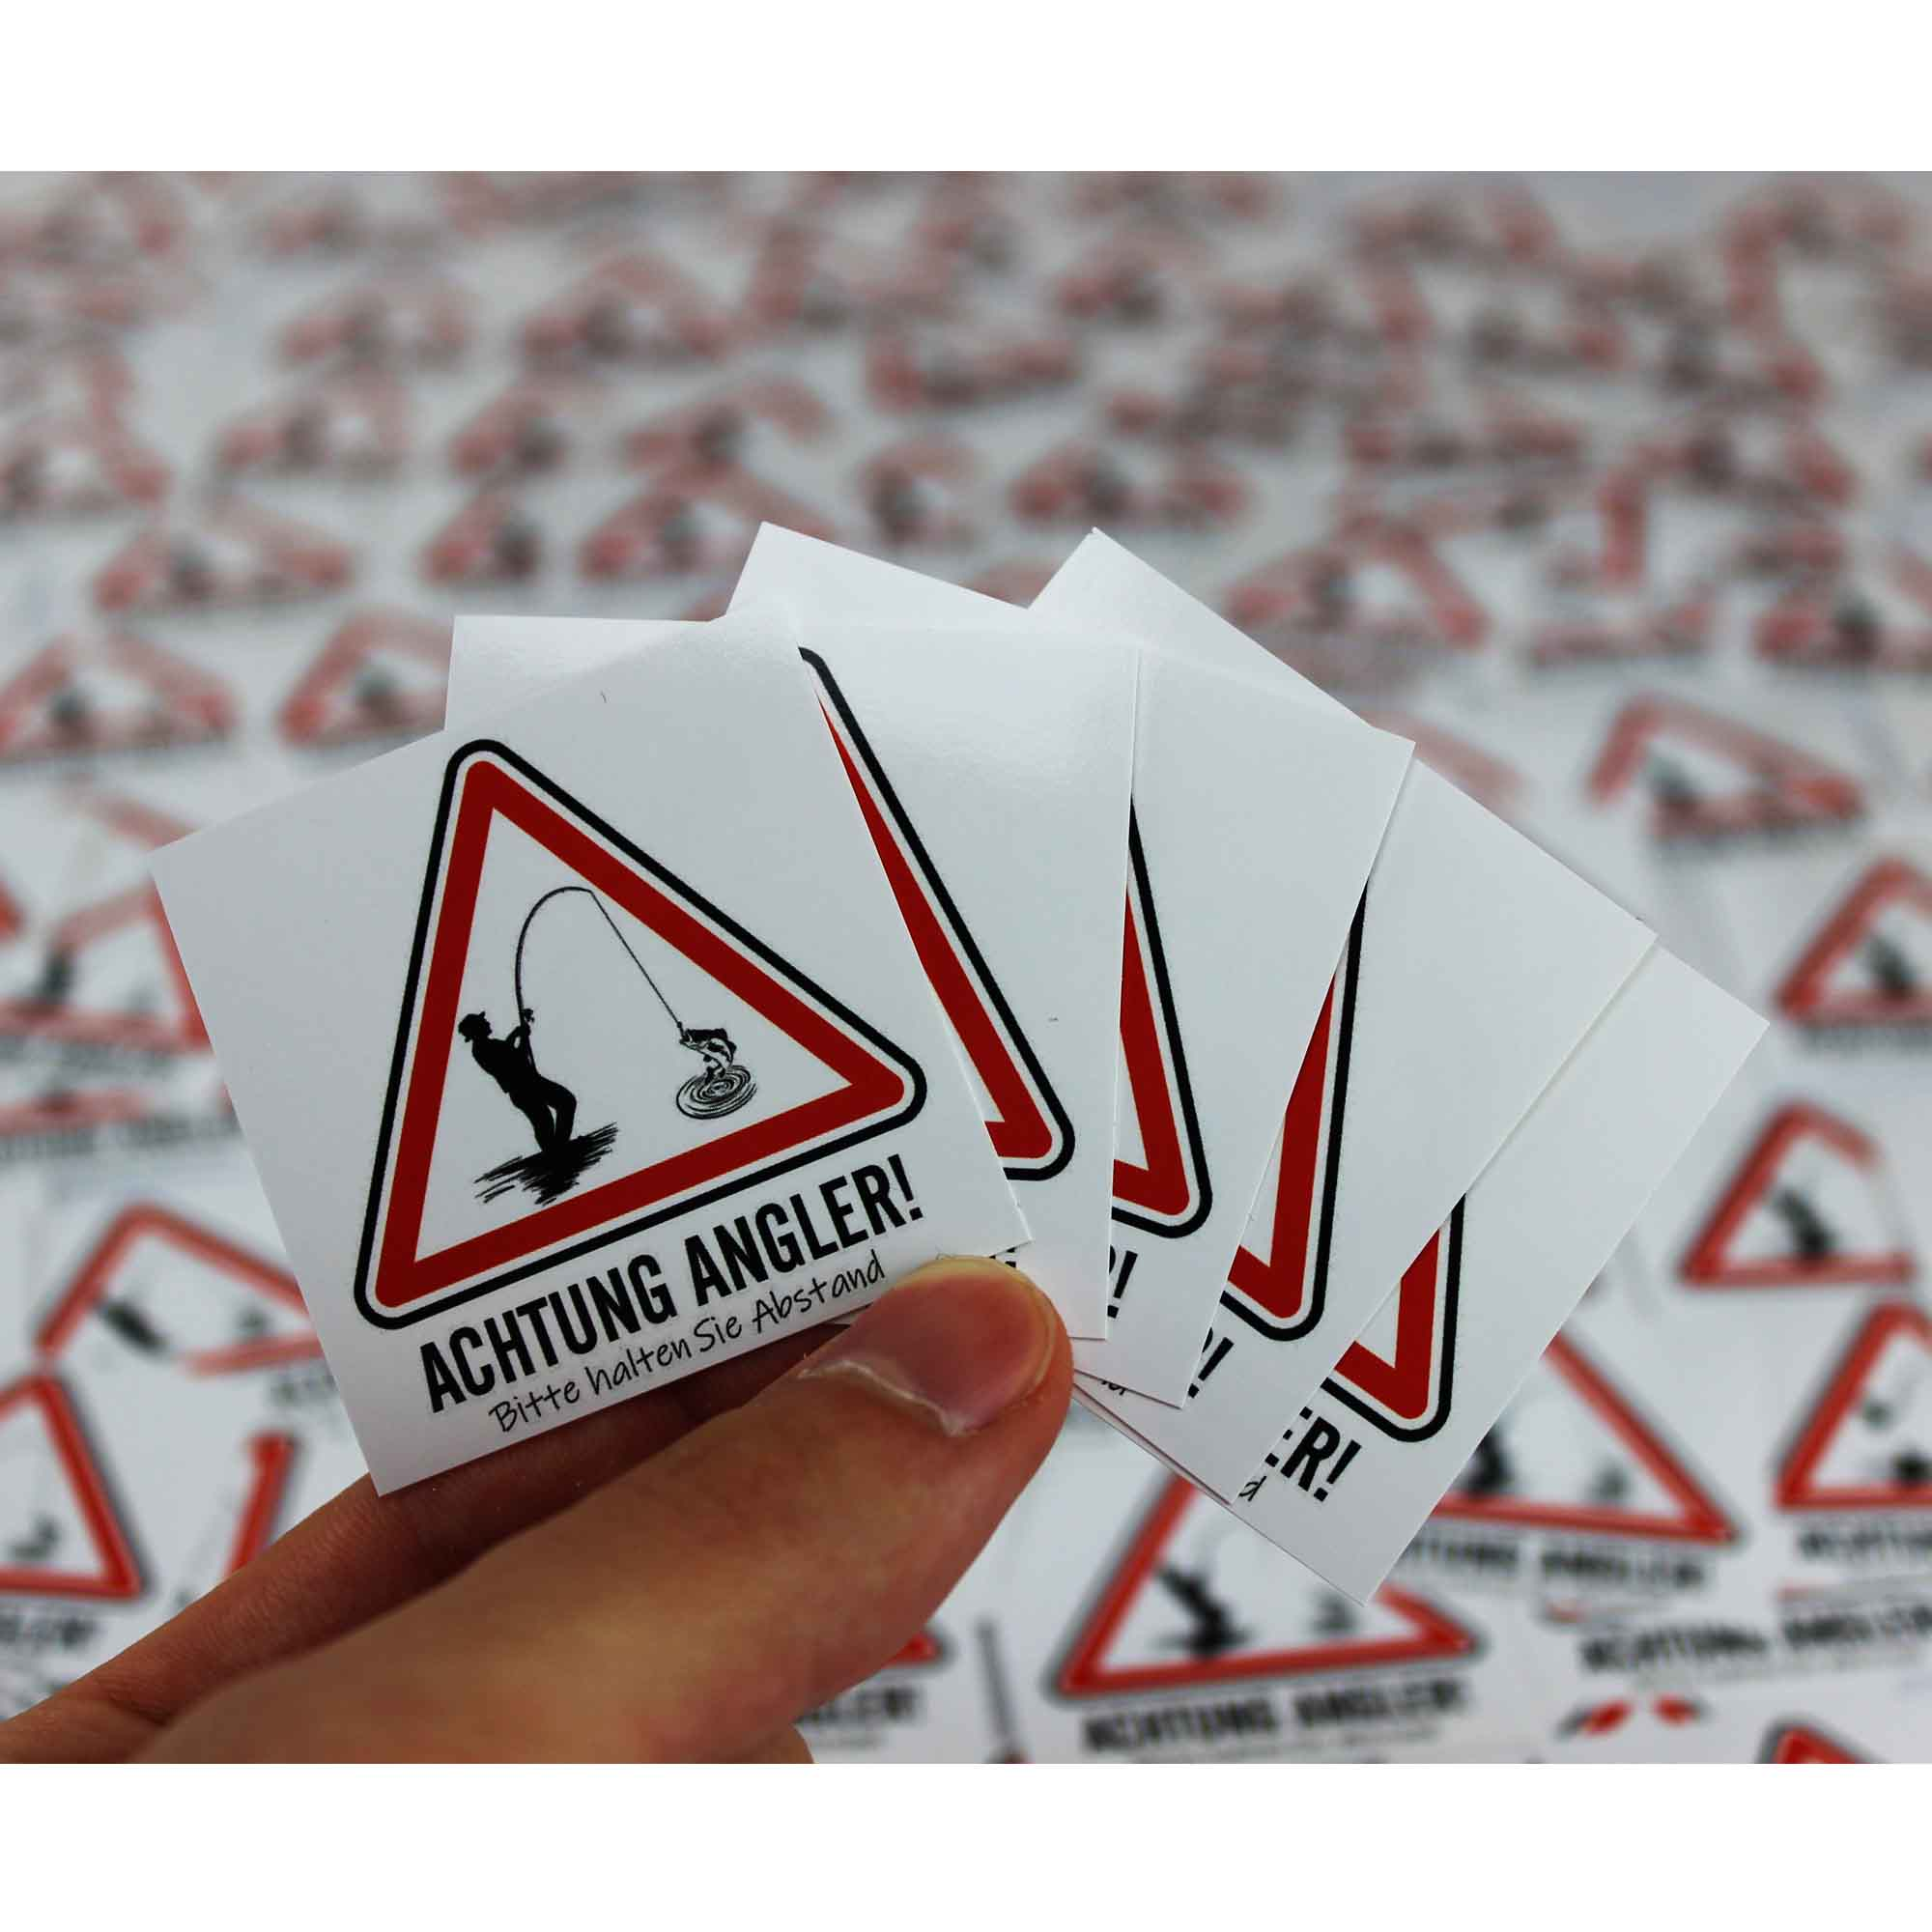 Sticker - Achtung Angler - Angel-Bude